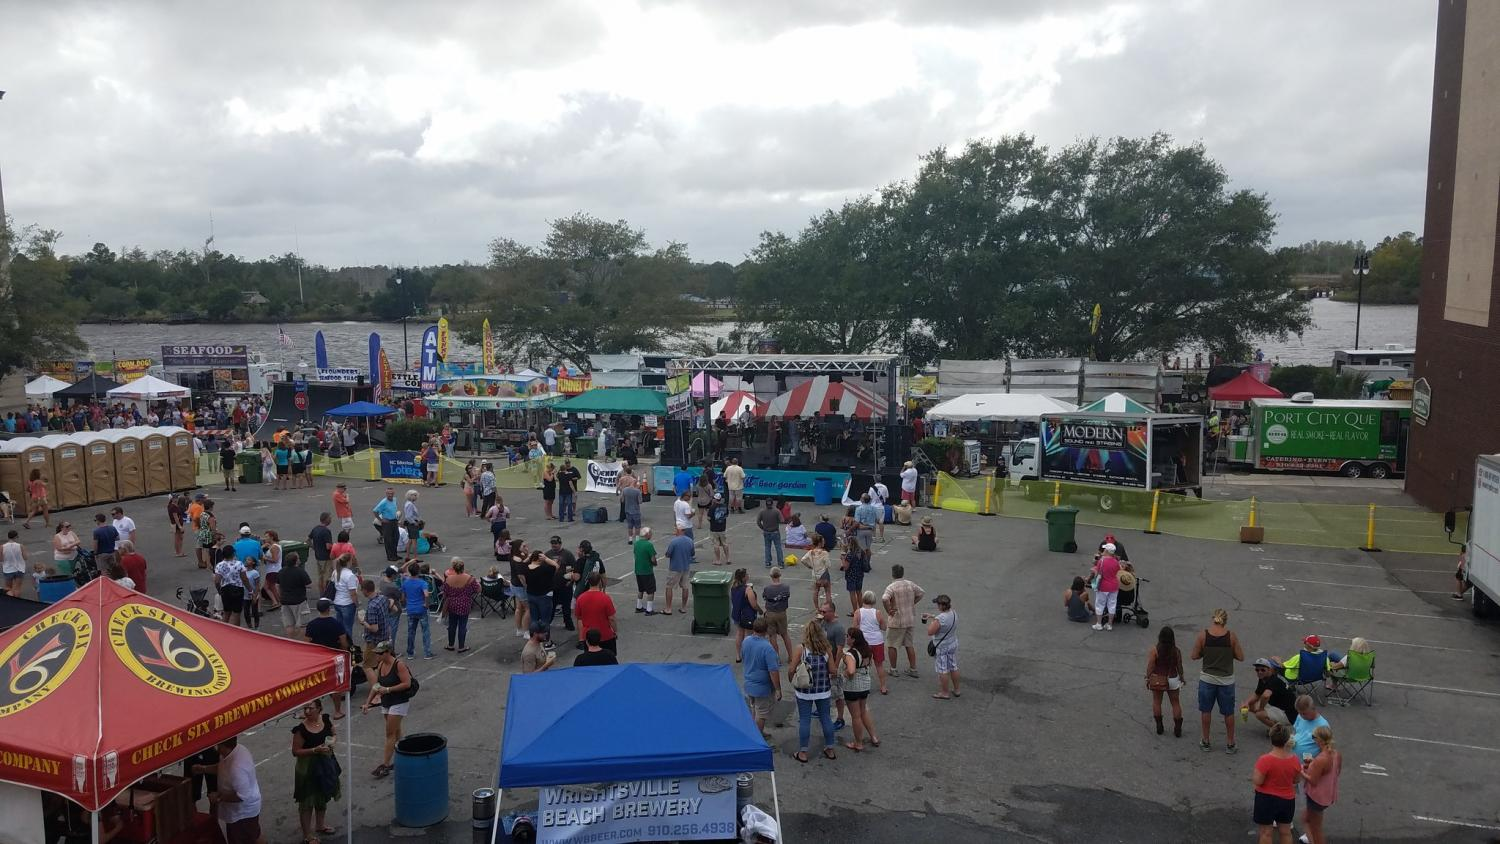 The view of Wilmington Riverfest from the balcony of Front Street Brewery on Saturday, Oct. 7. Thousands of Wilmington residents gathered for the annual festival, which highlights local artists and businesses in a community setting.